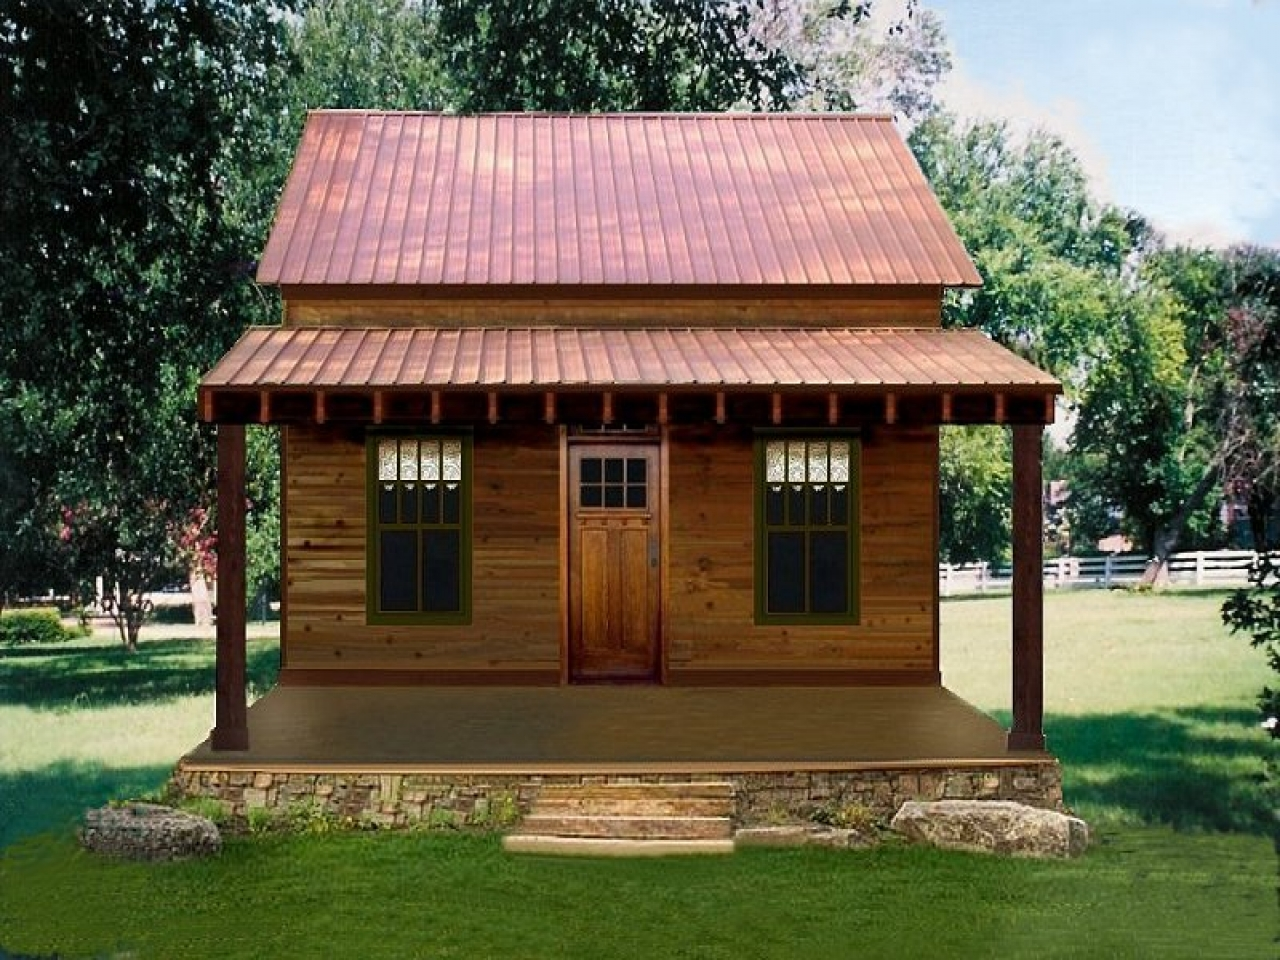 Tiny Home Plans Designs: Small Lake Cabin House Plans Small Lake Front Cabin, Tiny